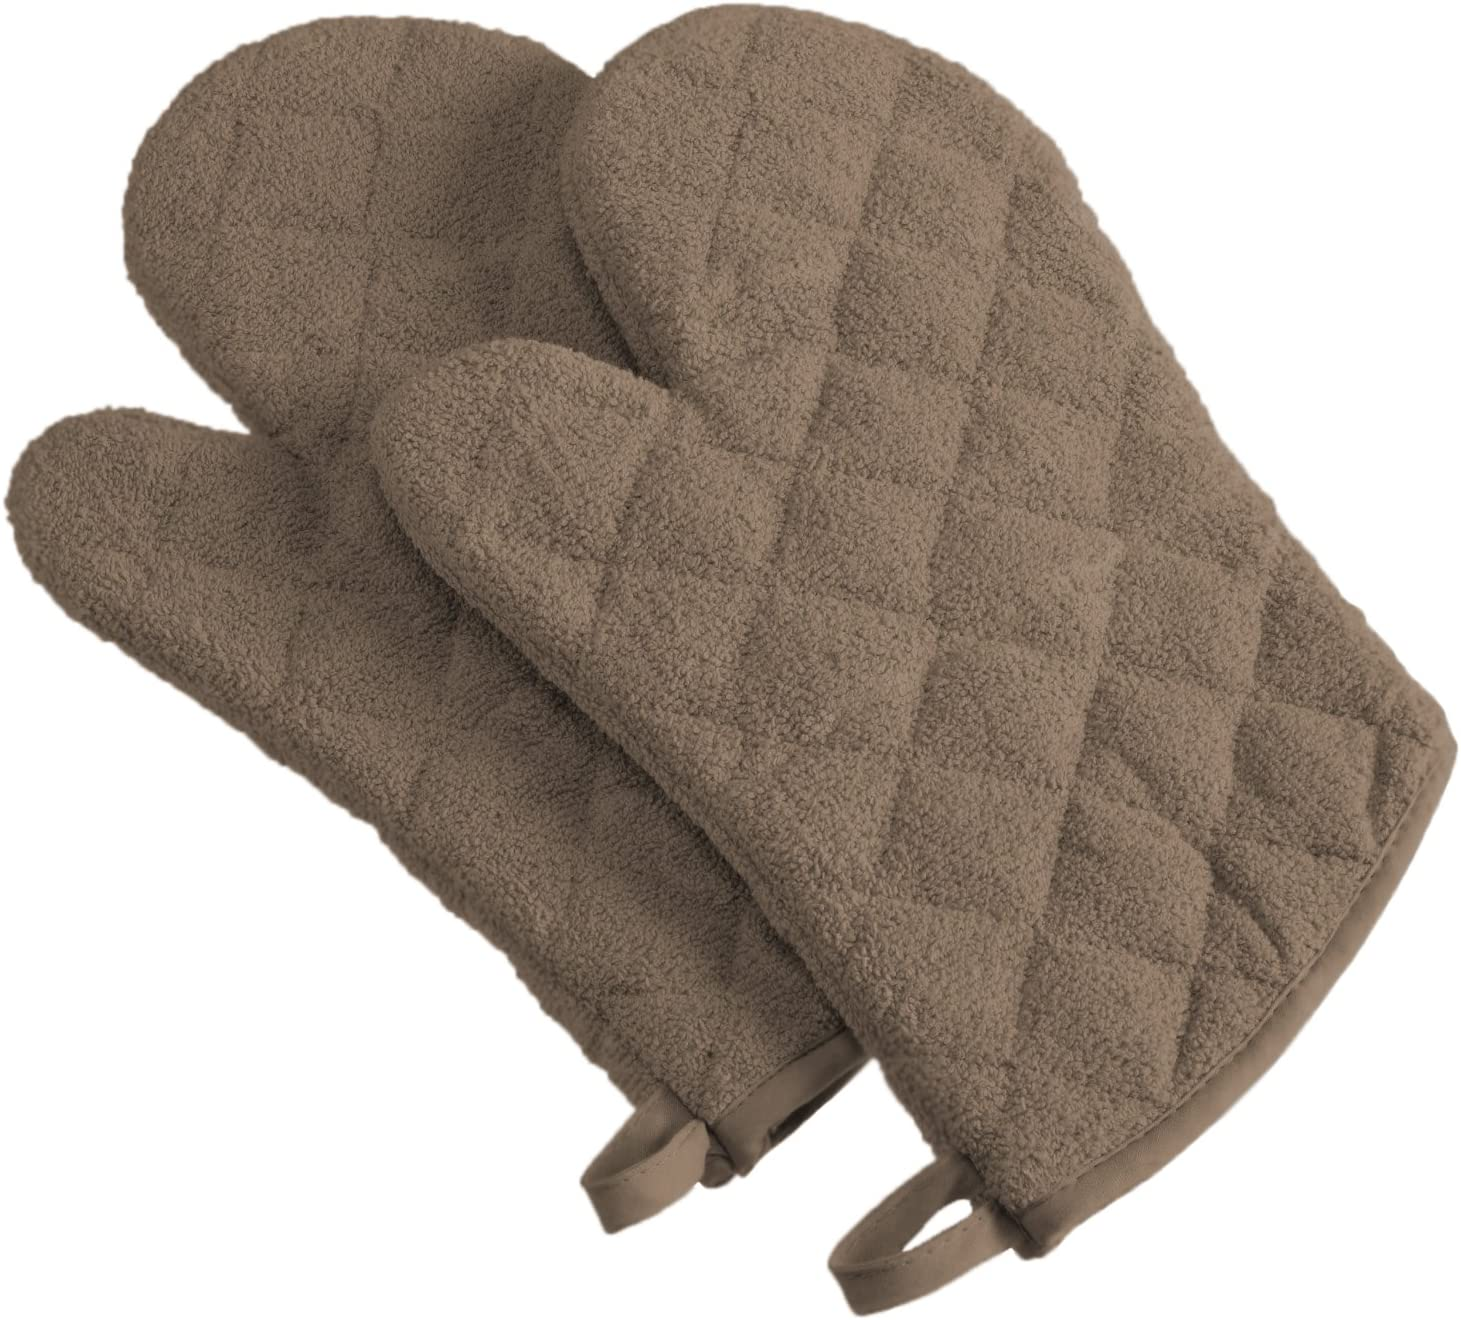 DII 100% Cotton, Terry Oven Mitt Set Machine Washable, Heat Resistant, 7 x 13, Brown, 2 Piece